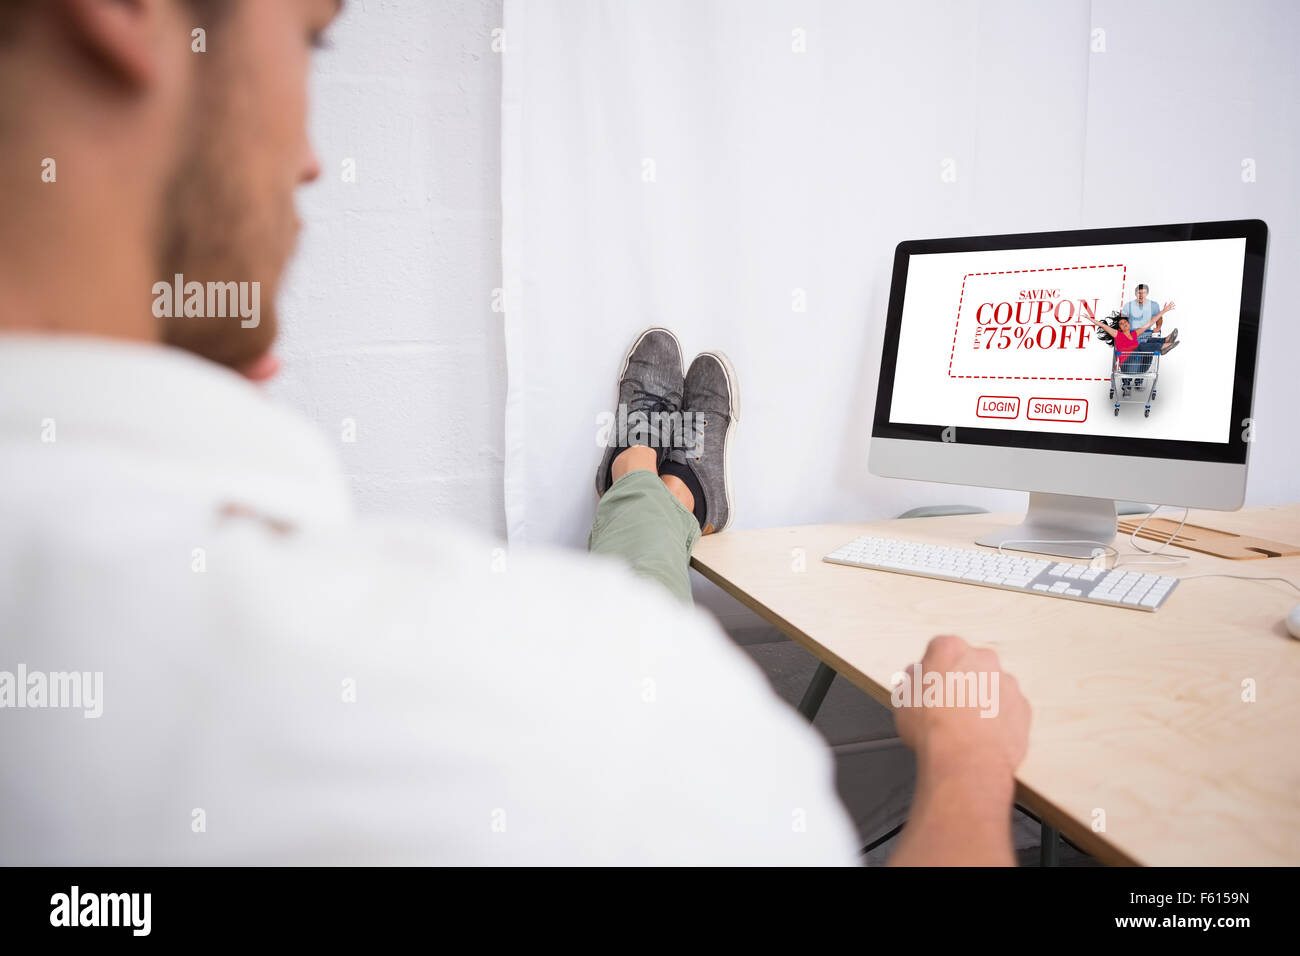 Composite image of businessman with legs crossed at ankle on office desk - Stock Image